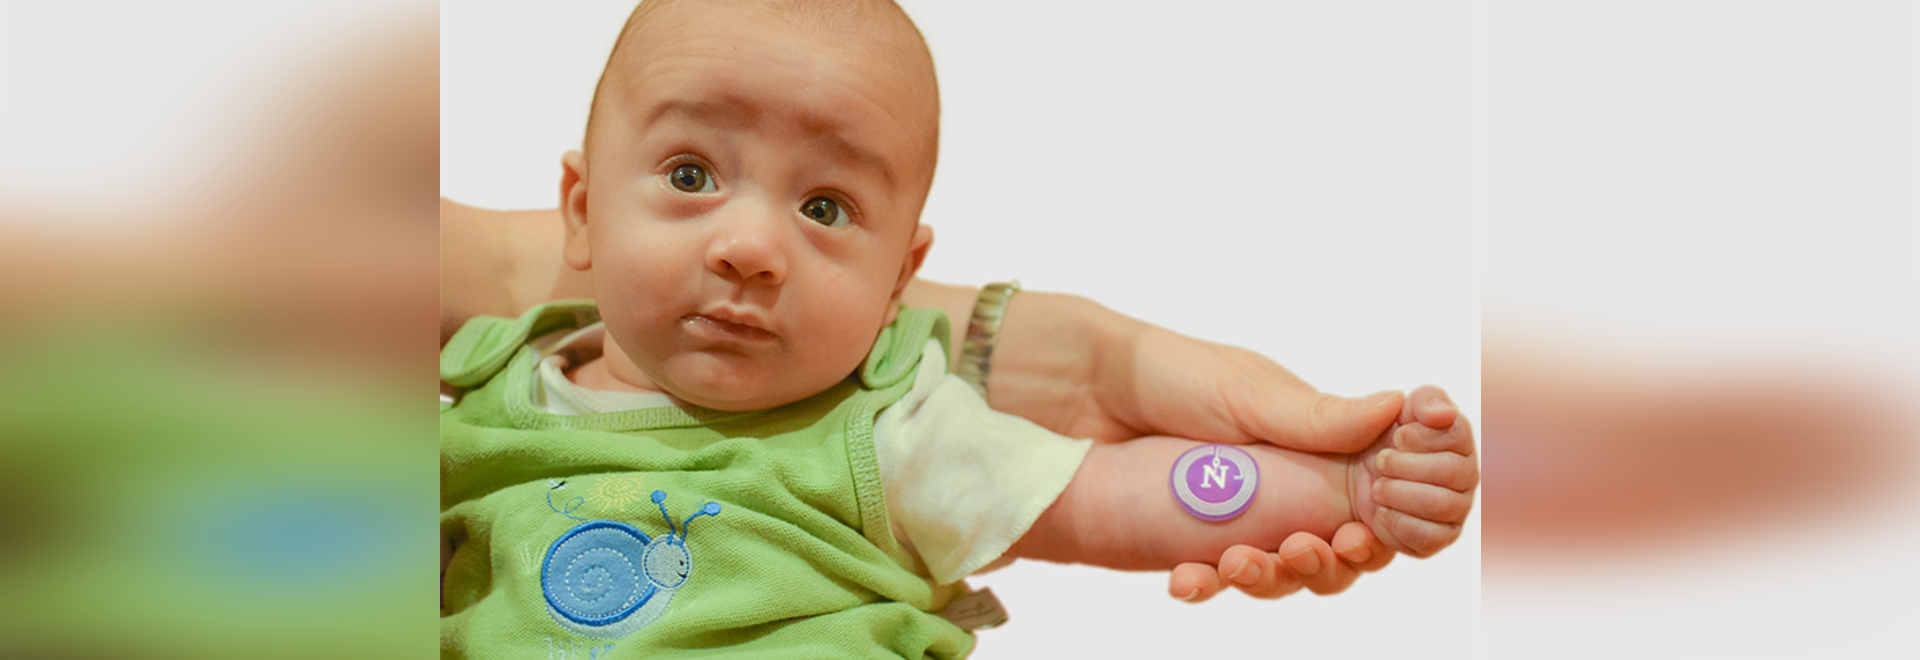 Sticker on Skin Diagnoses Cystic Fibrosis in Real-time